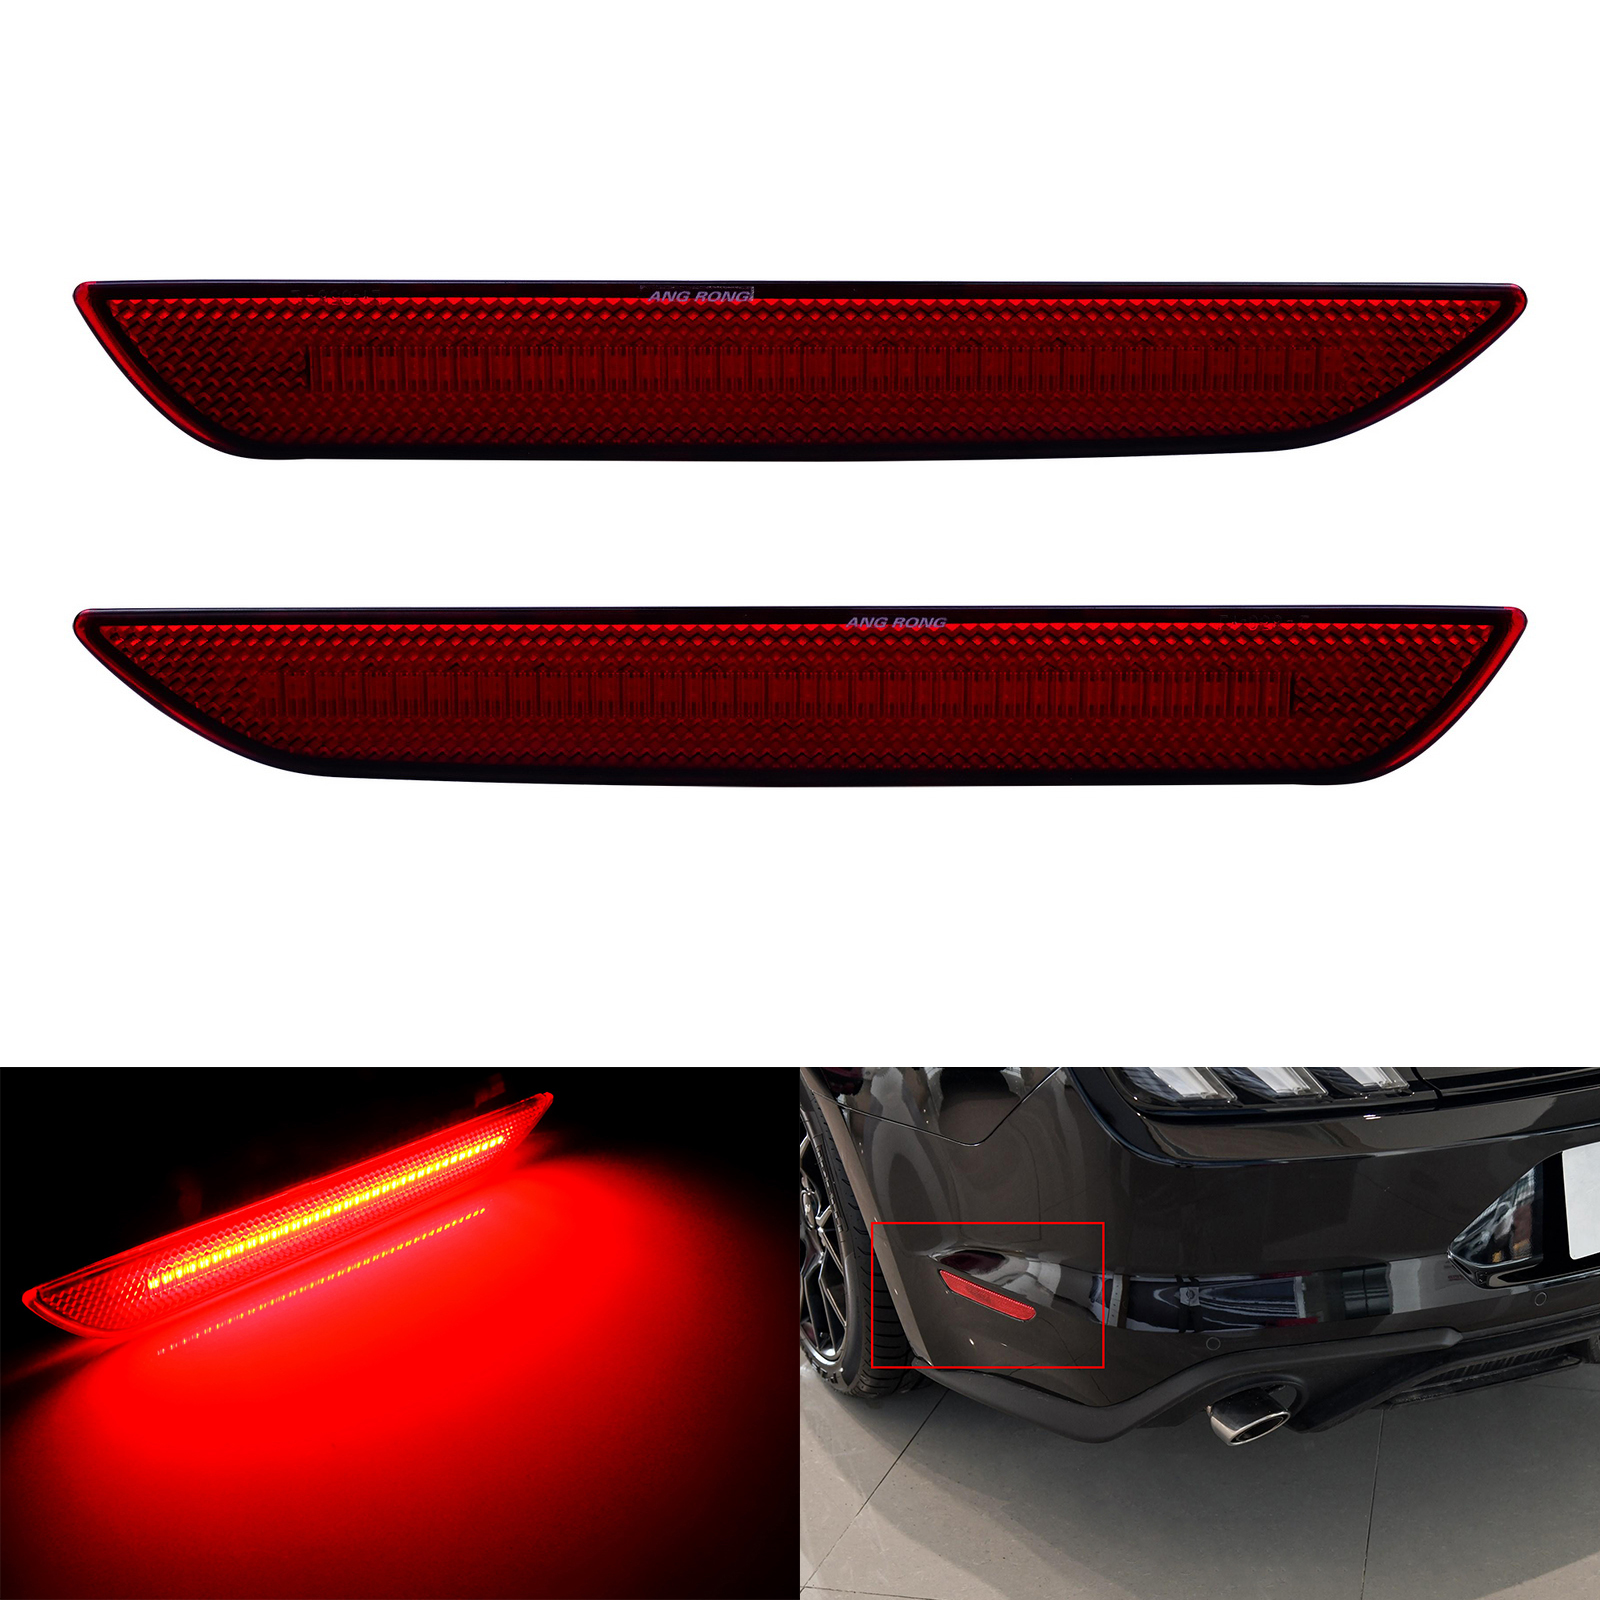 Red Door Side Mirror Rearview Trim Cover Fit For Ford Mustang 2015-17 US Version